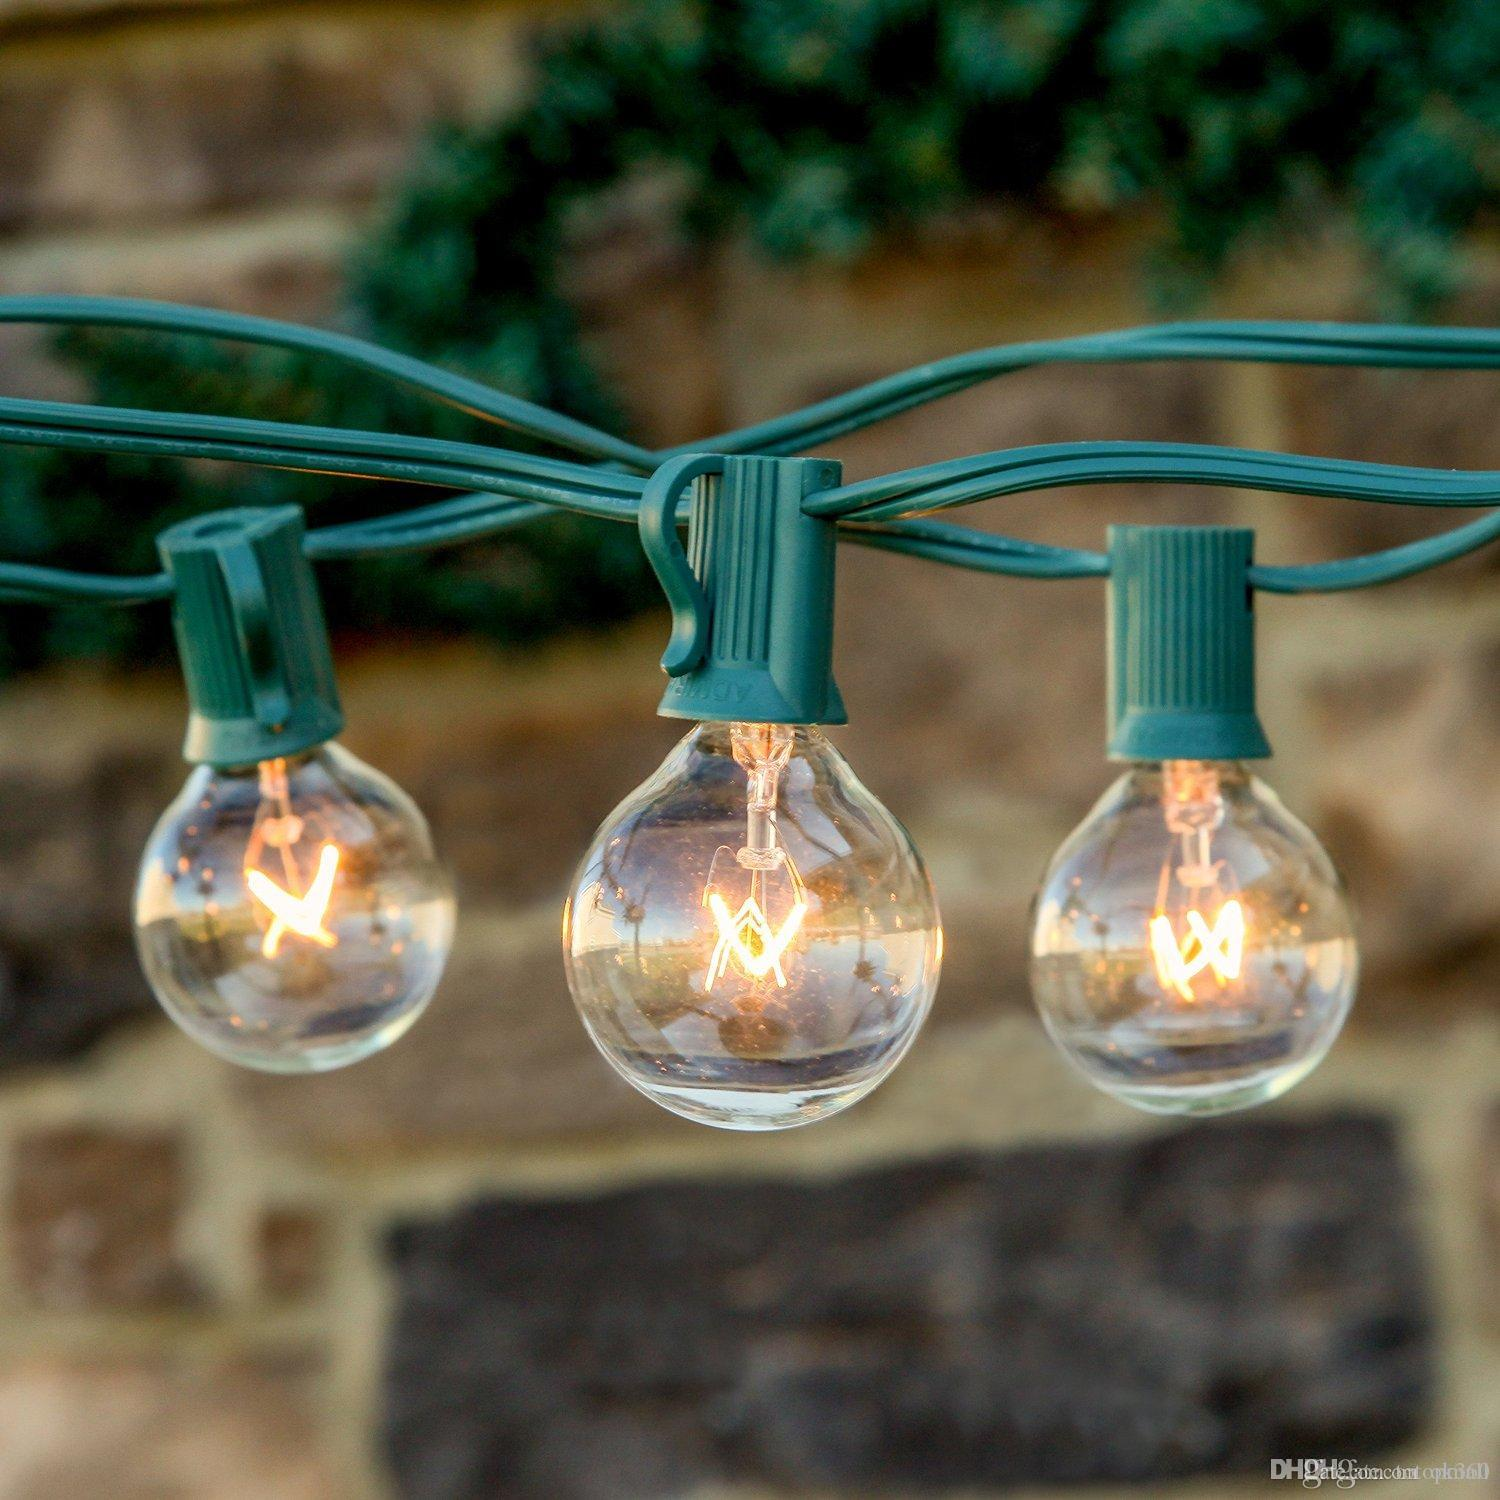 Cheap String Lights 25ft Clear Globe Bulb G40 String Light Set With 25 G40  Bulbs Included Patio Lightsu0026Patio String Lights G40 Bulb String Lamp String  Patio ...